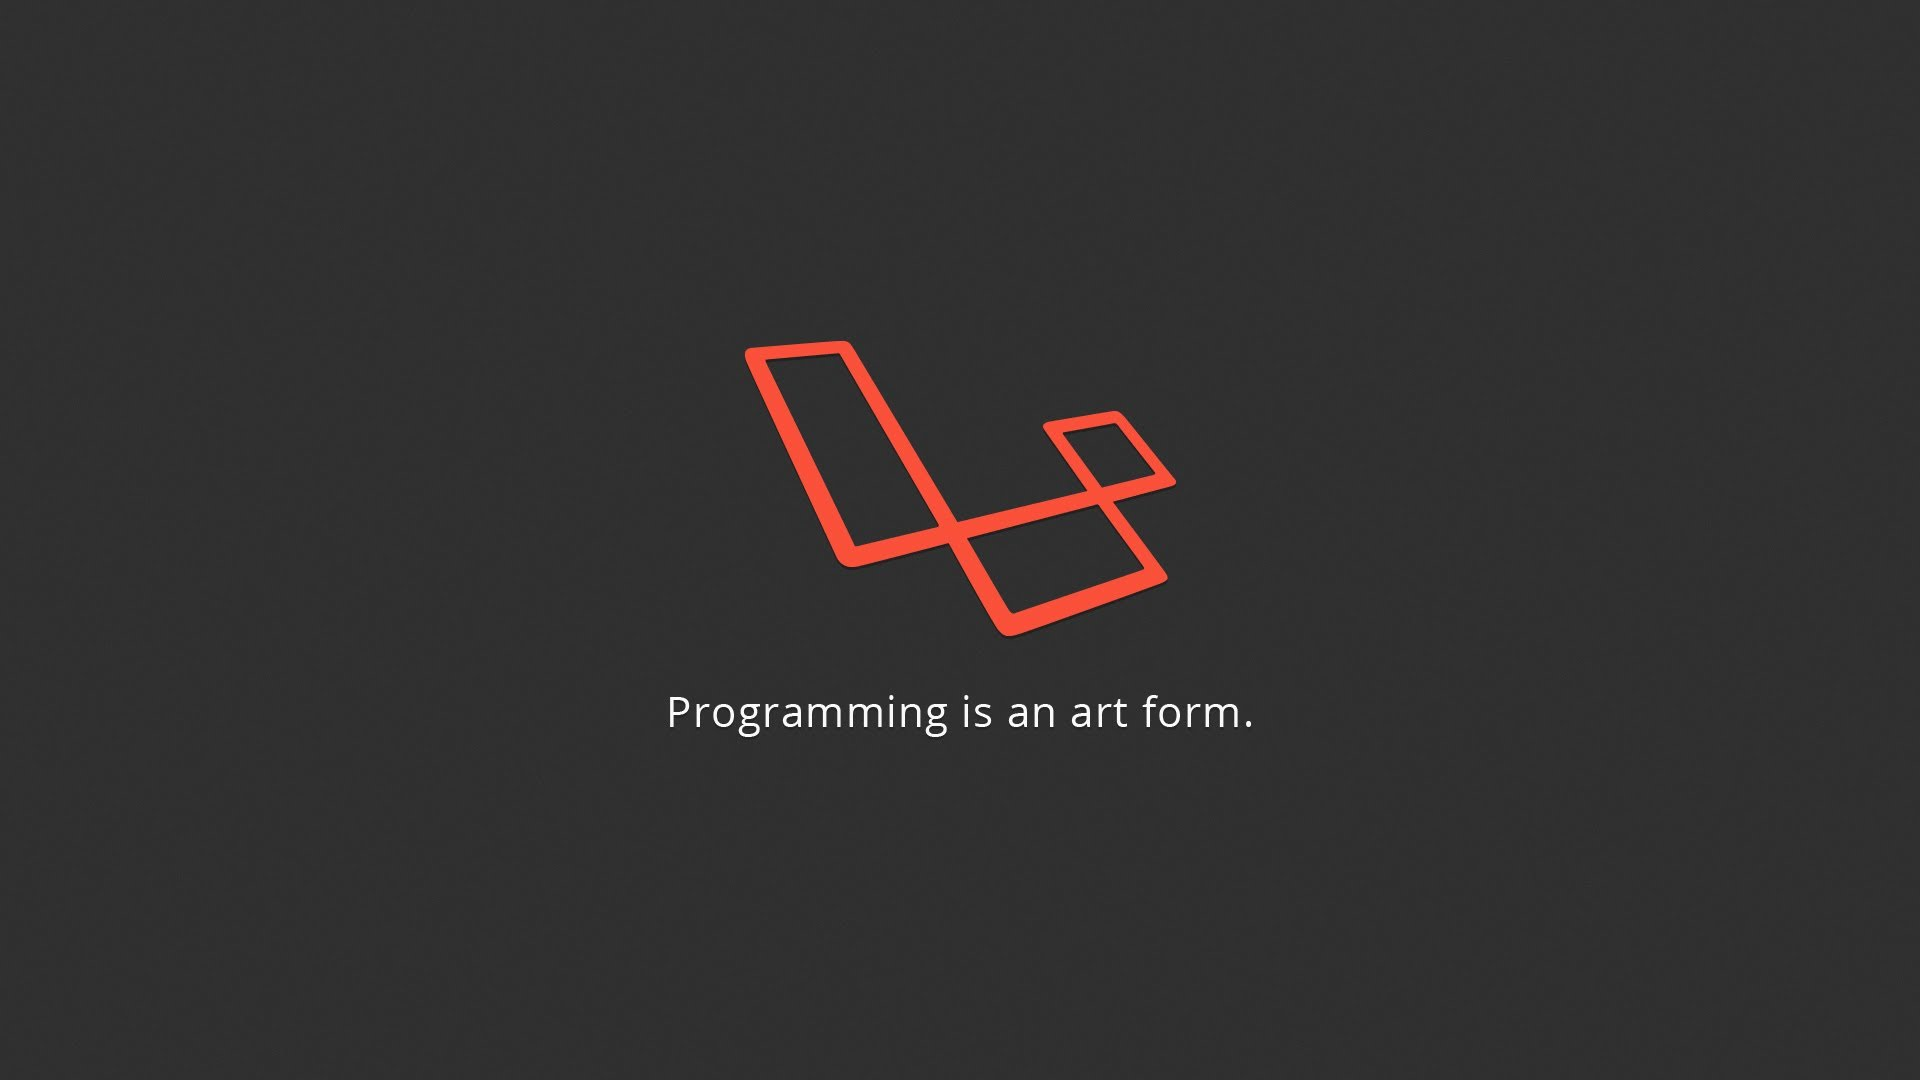 30 Programming HD Wallpapers for Desktop 1920x1080